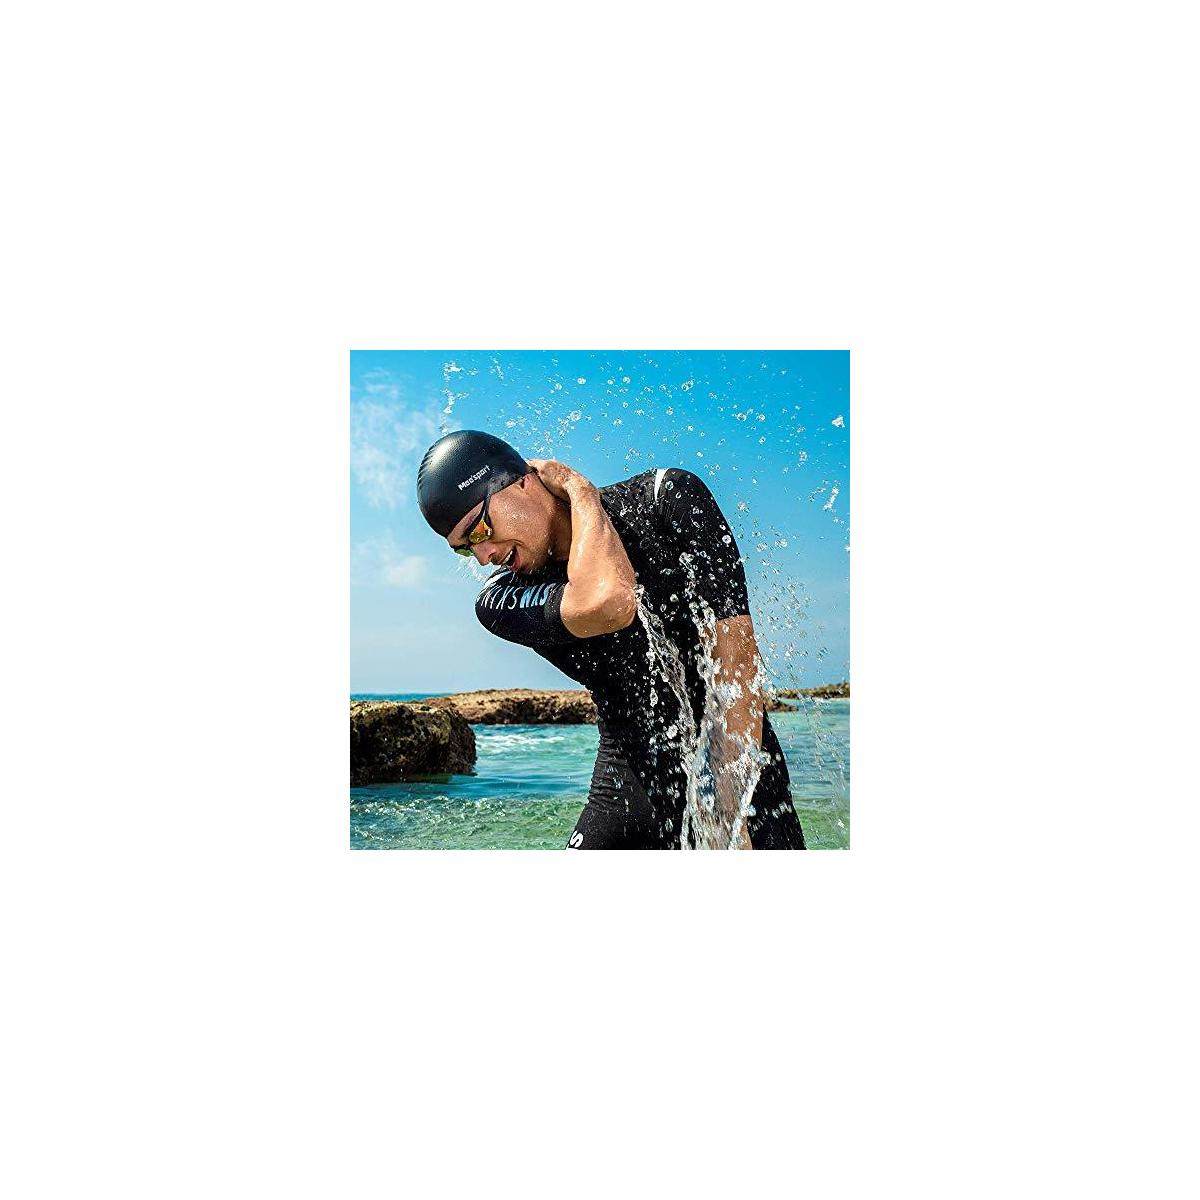 Mee'sport Swim Caps, Premium Silicone Solid Swimming Hats with Ear Protection, Comfortable Fit No-Slip Bathing Cap for Men Women - Short & Long Hair (Pack 2)